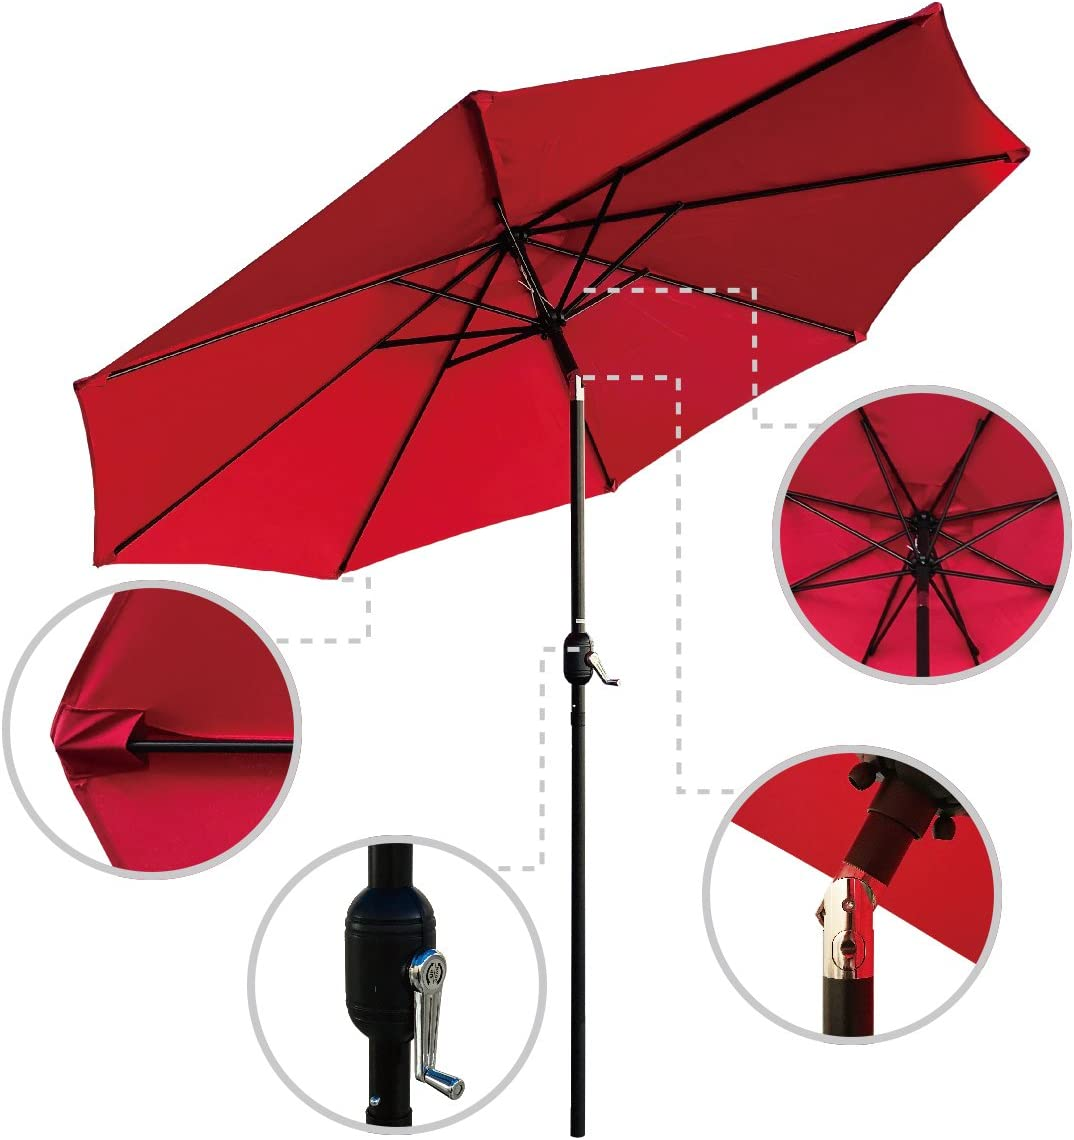 ABBLE Outdoor Patio Umbrella 9 Ft Stripe with Crank and Tilt, Weather Resistant, UV Protective Umbrella, Durable, 8 Sturdy Steel Ribs, Market Outdoor Table Umbrella - Red